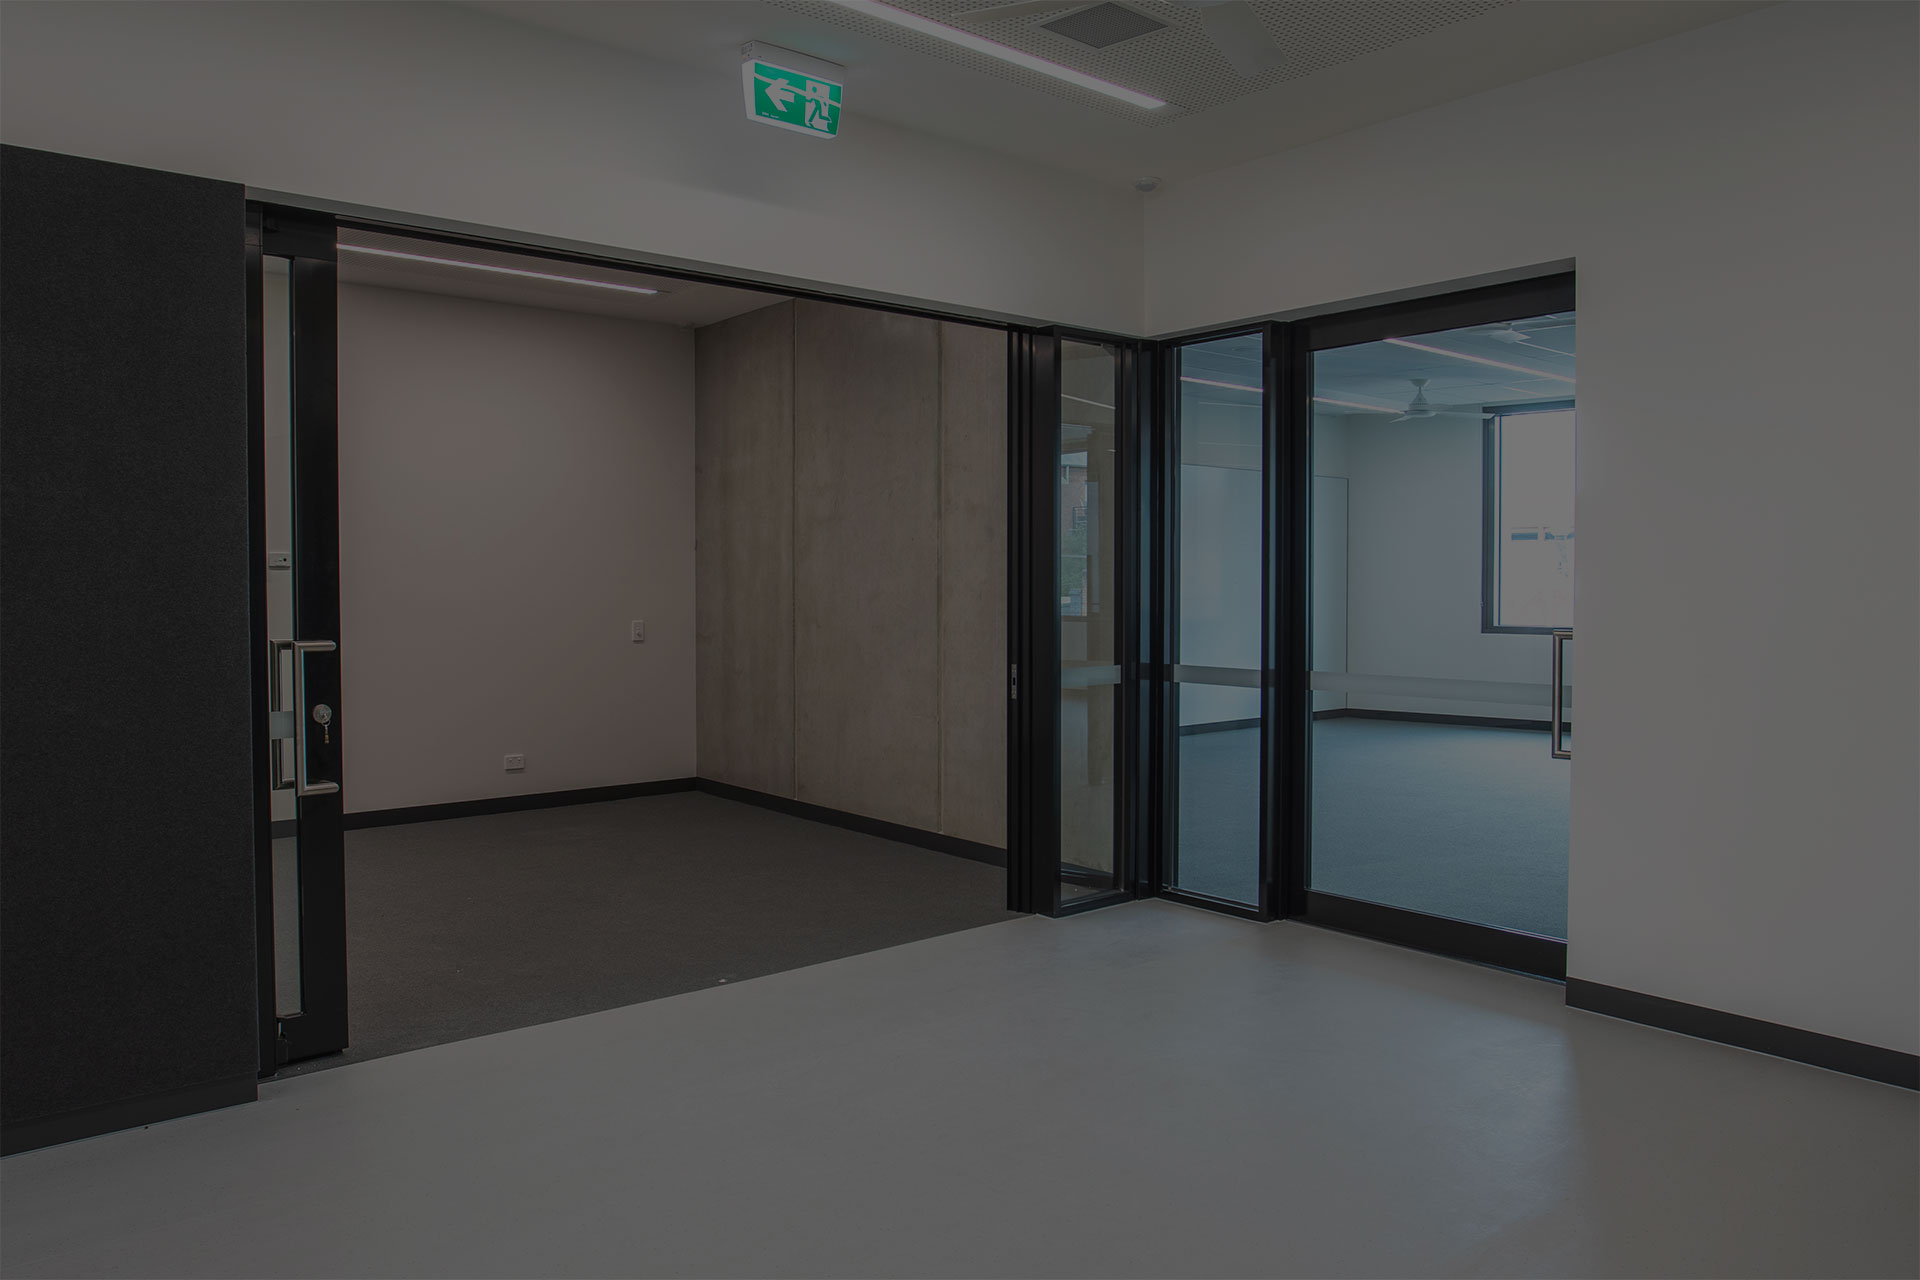 image of acoustic sliding door system at a secondary school